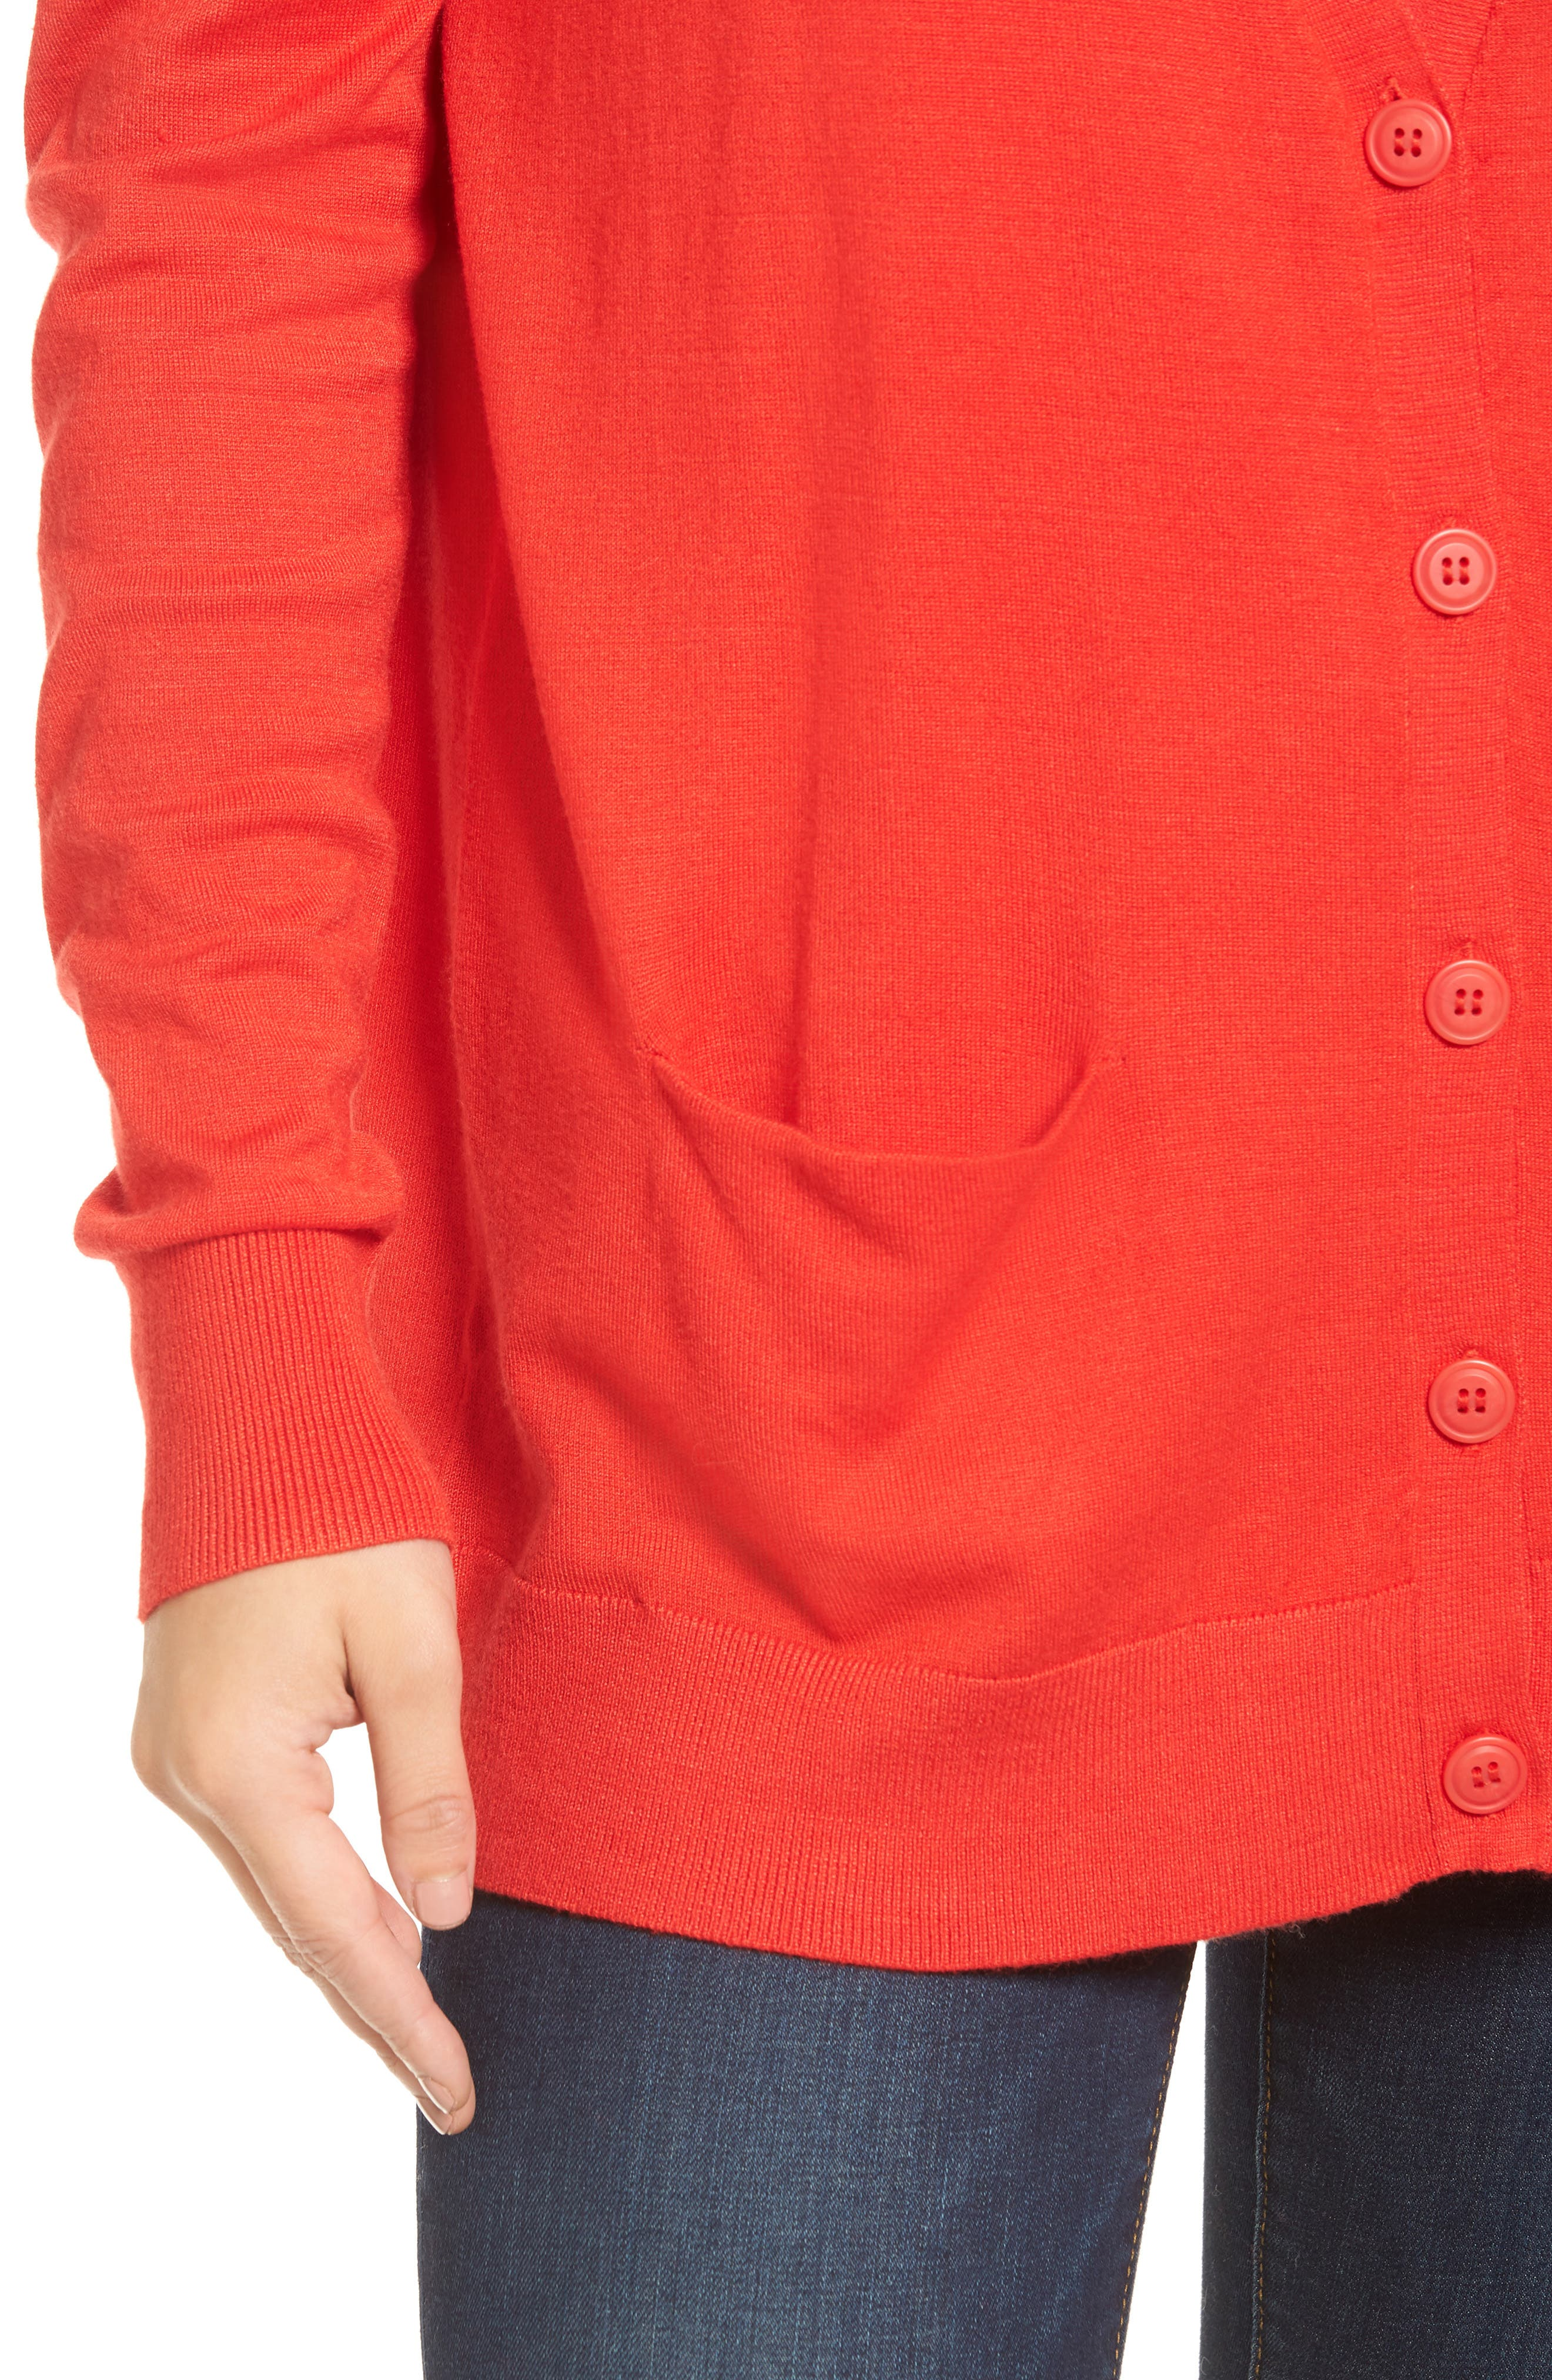 Relaxed Pocket Cardigan,                             Alternate thumbnail 35, color,